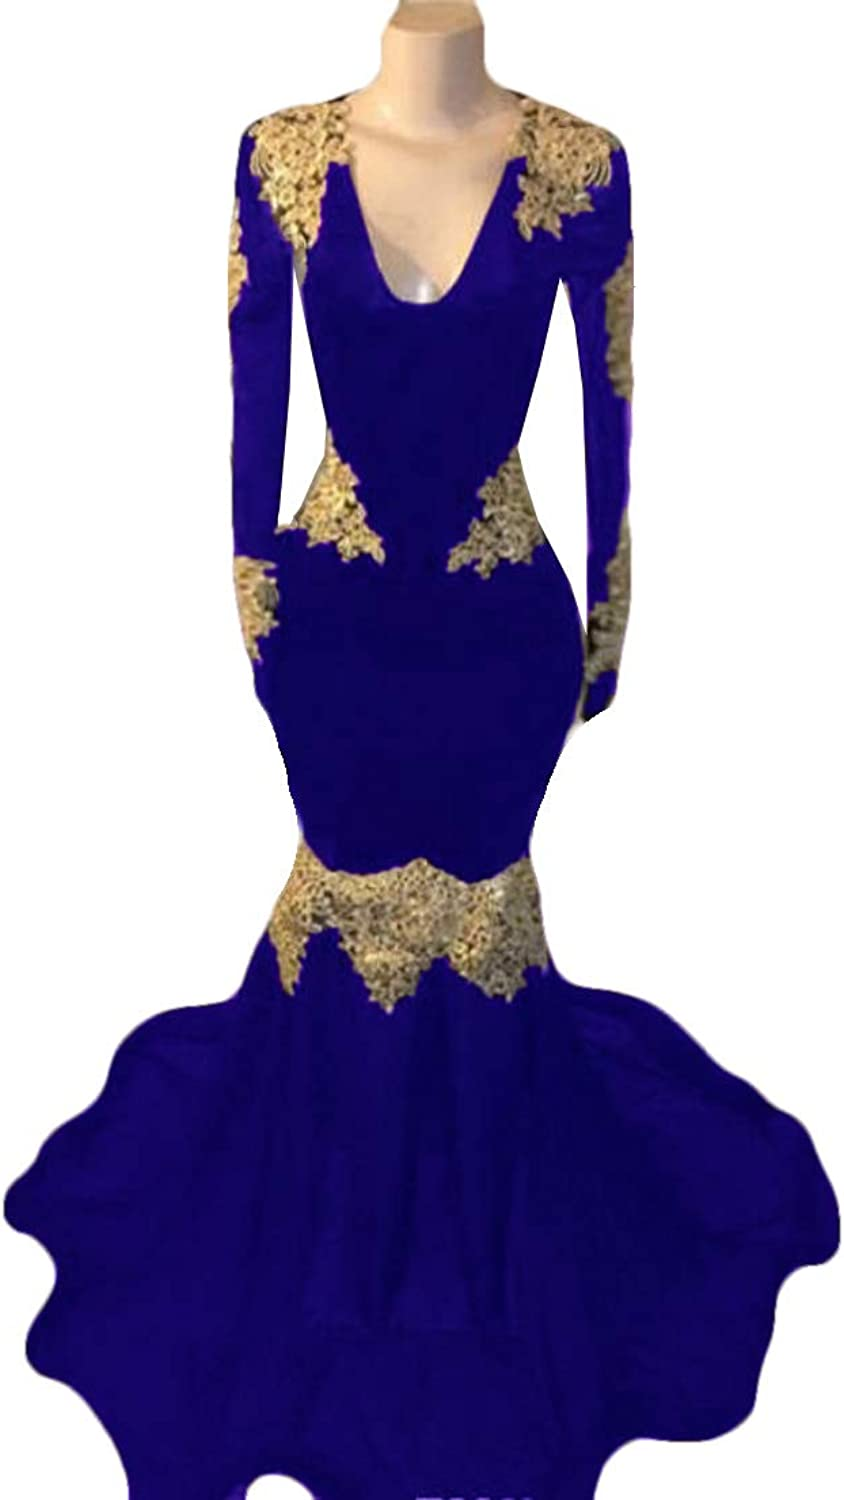 WZW 2K19 African Mermaid Evening Dresses Deep V Neck gold Lace Appliques Long Sleeves Prom Dress Sweep Train Party Gowns